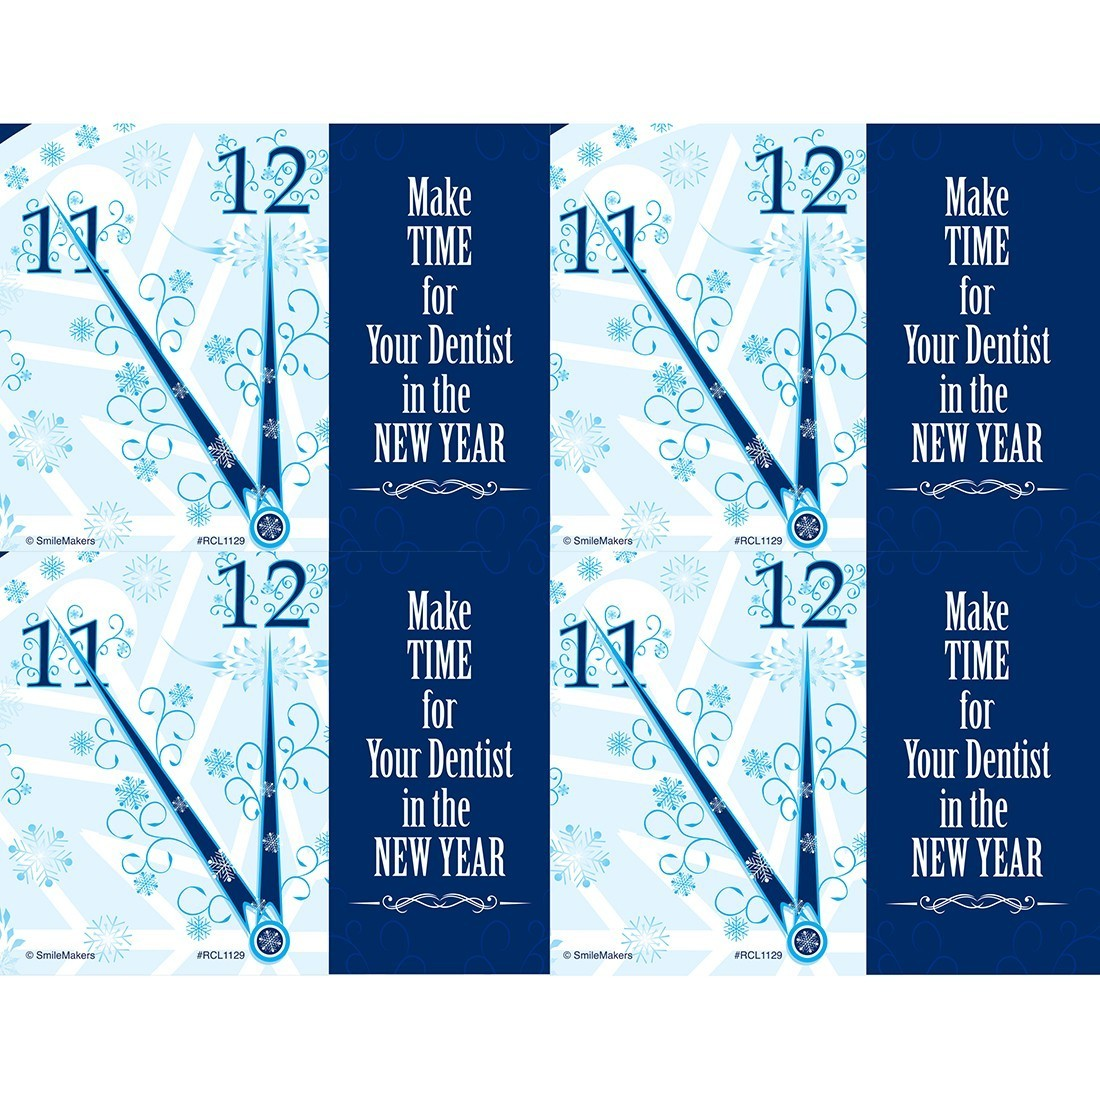 Make Time in New Year Laser Cards [image]